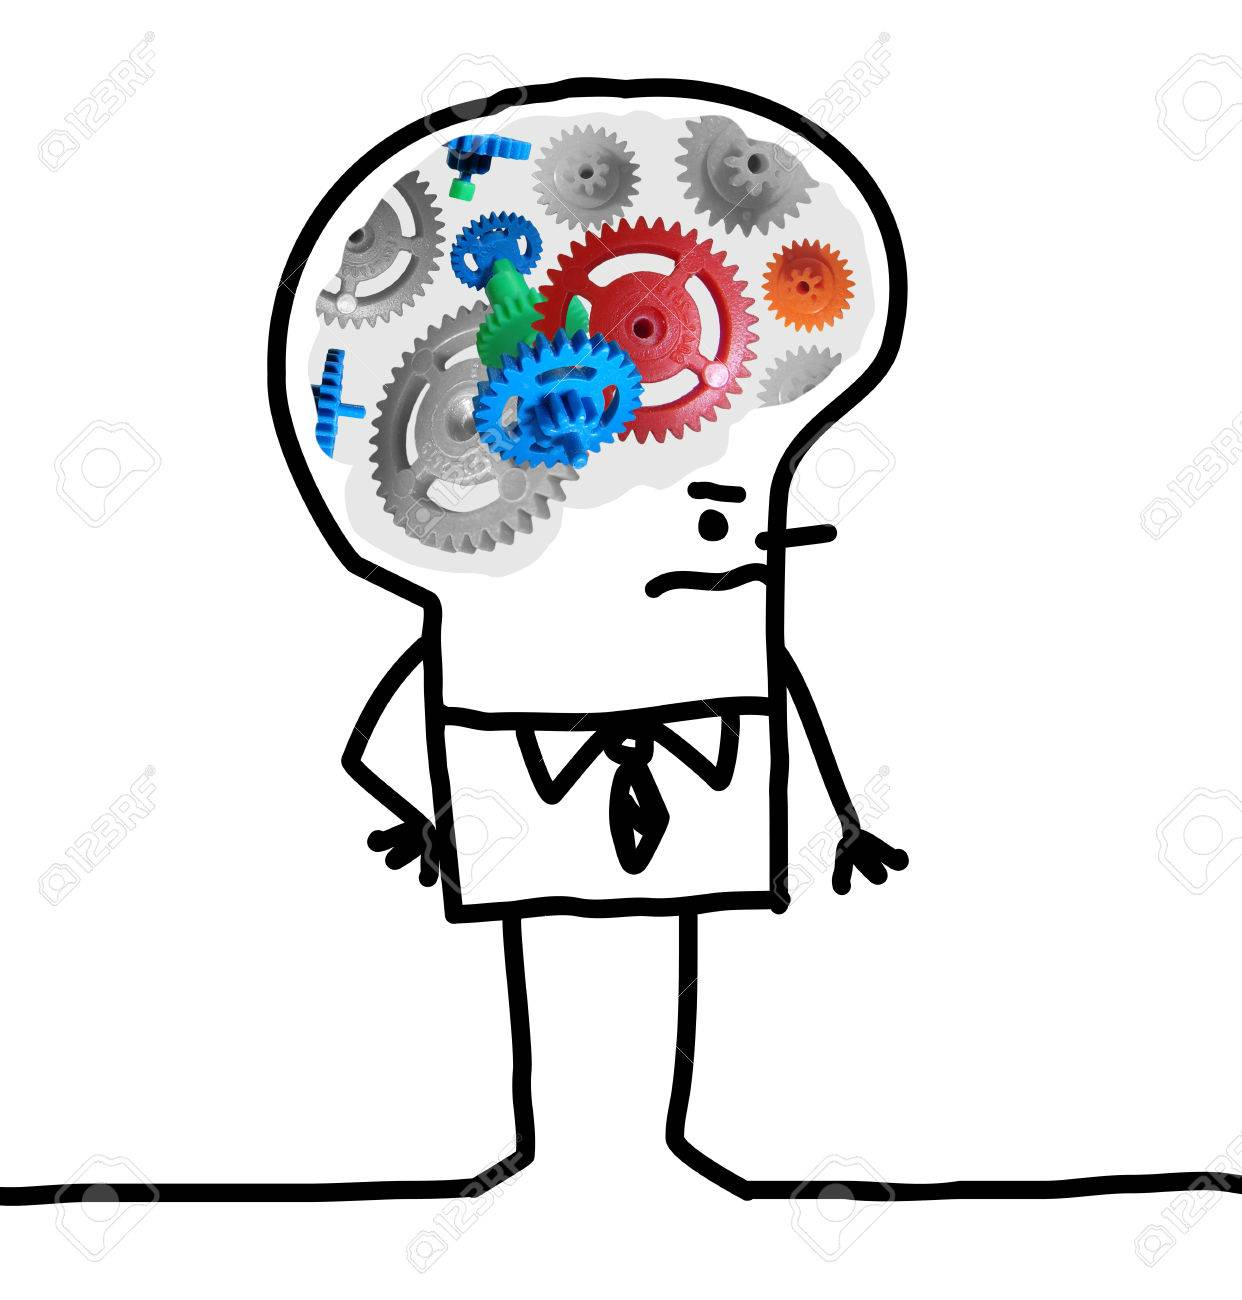 Cartoon big brain man gear and concept stock photo picture and cartoon big brain man gear and concept stock photo 72920555 thecheapjerseys Gallery